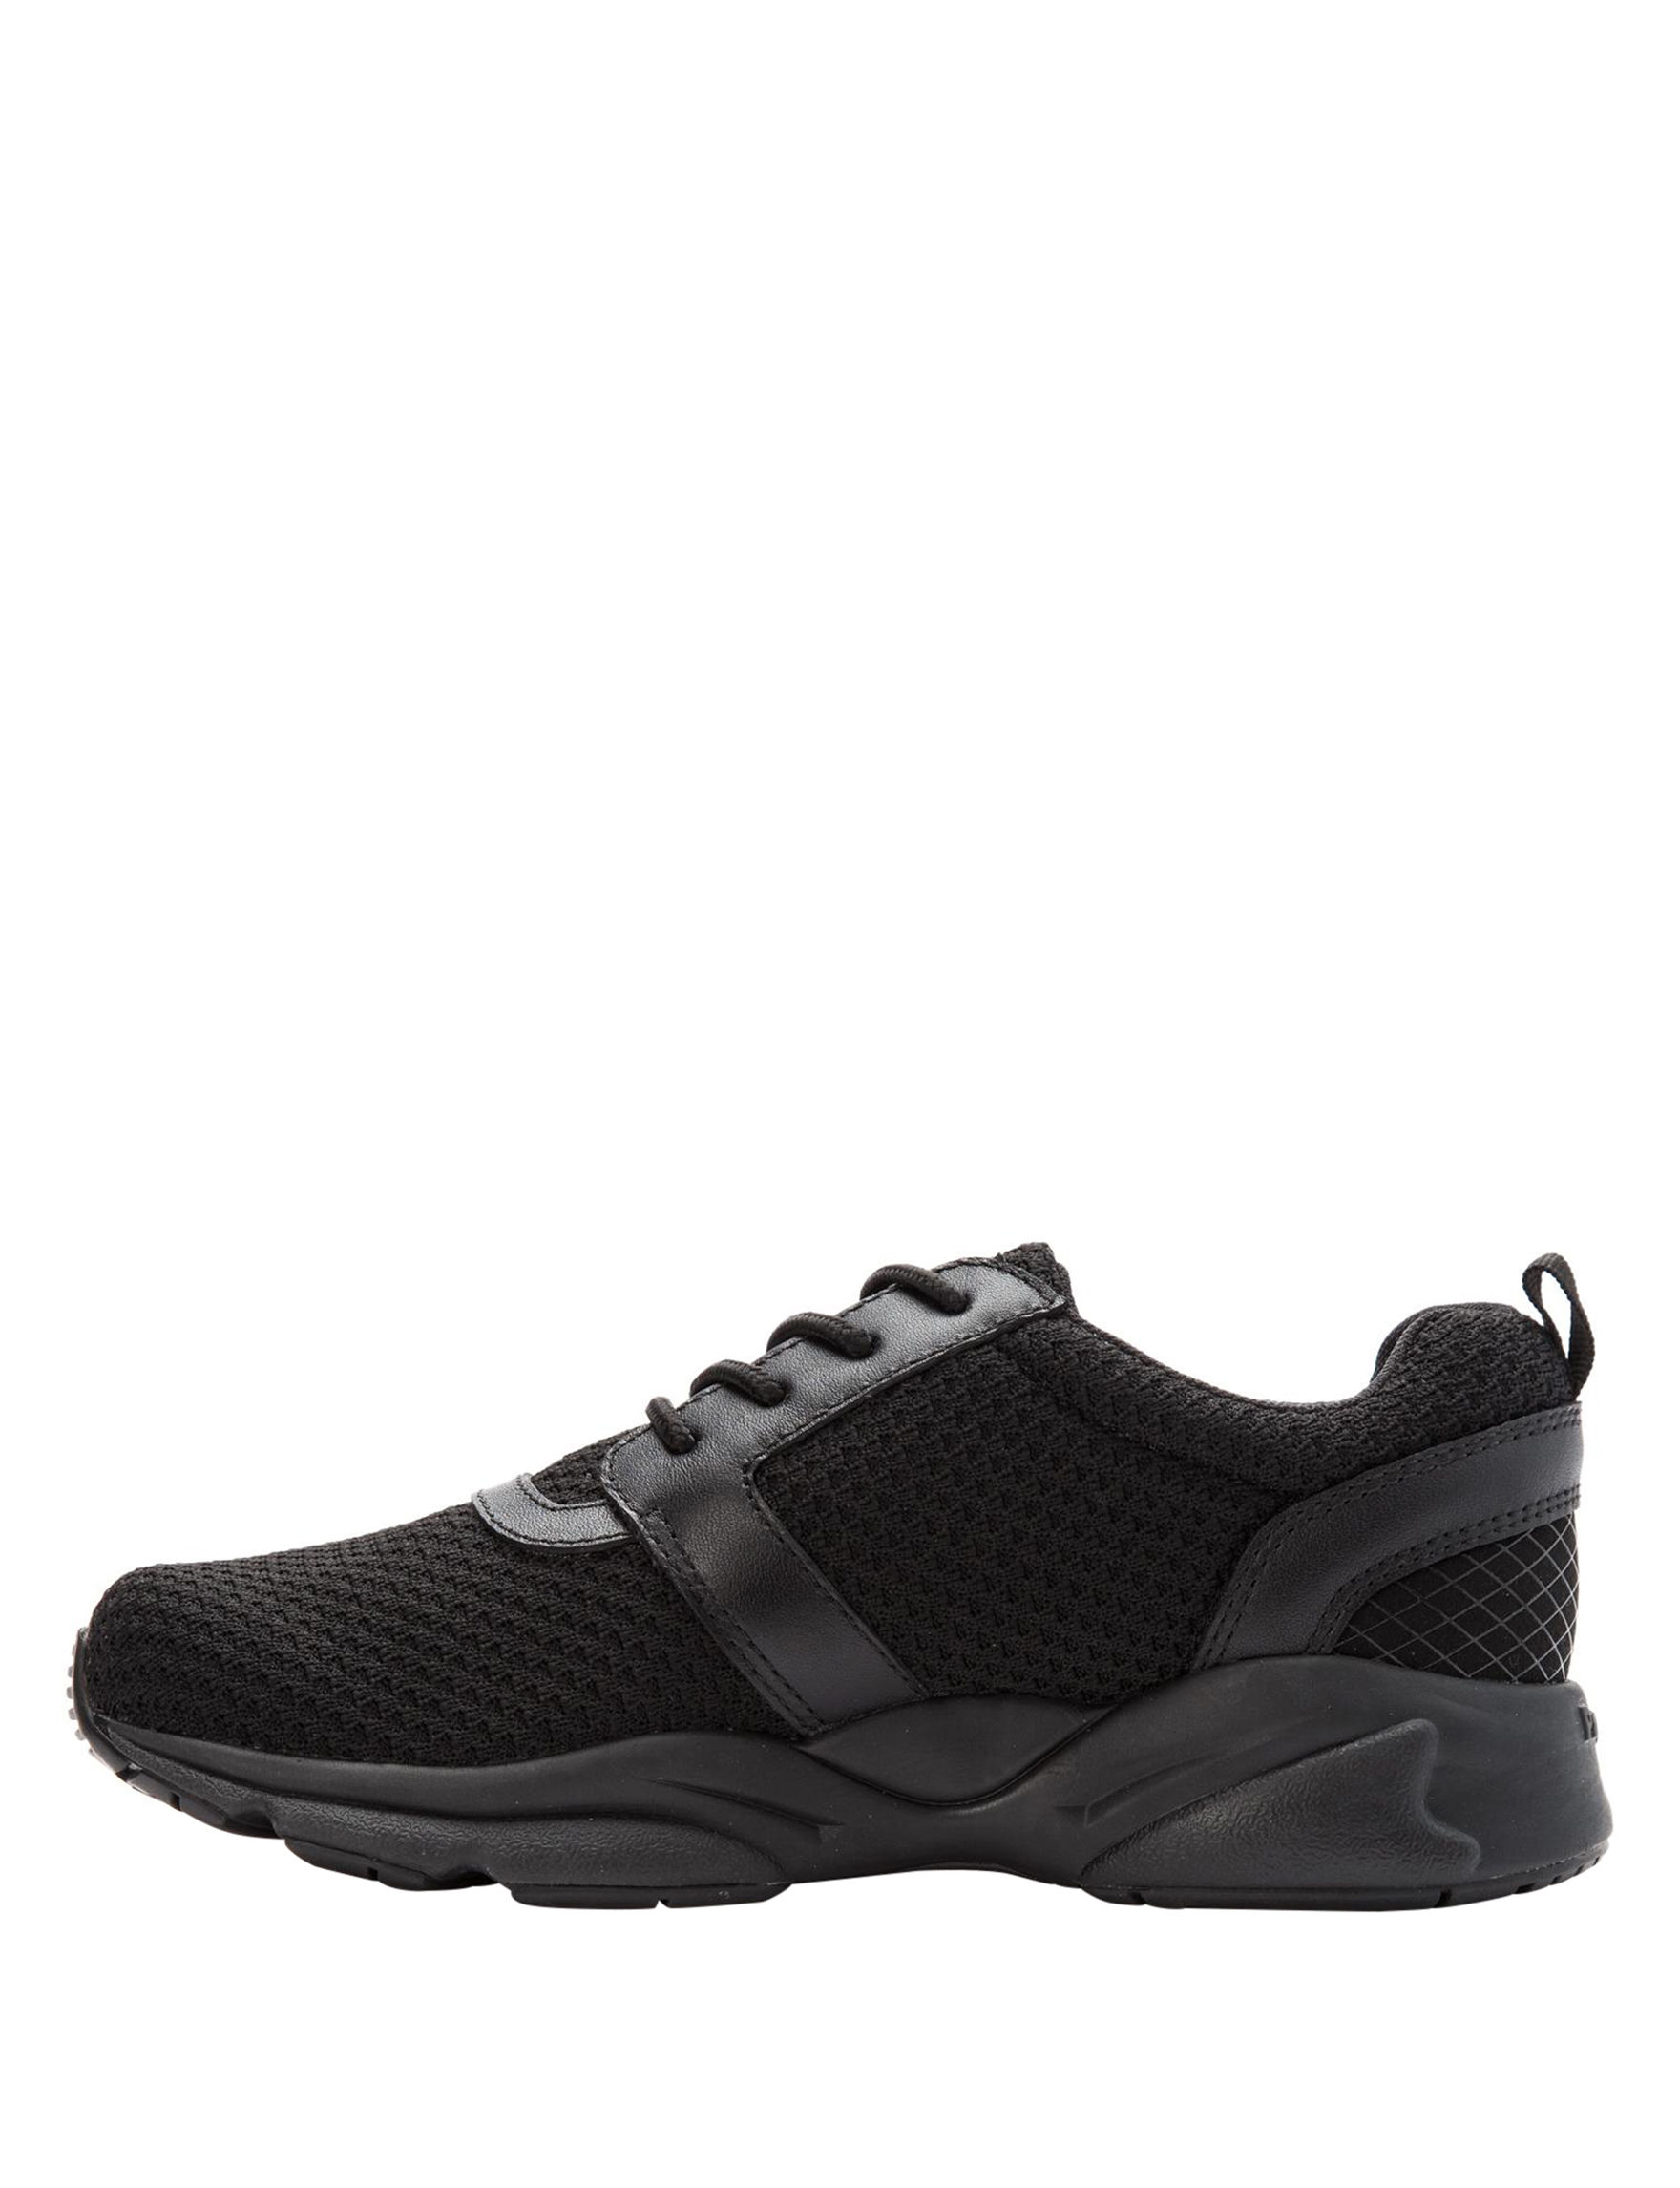 89615290c5be Propet Stability X Athletic Shoes